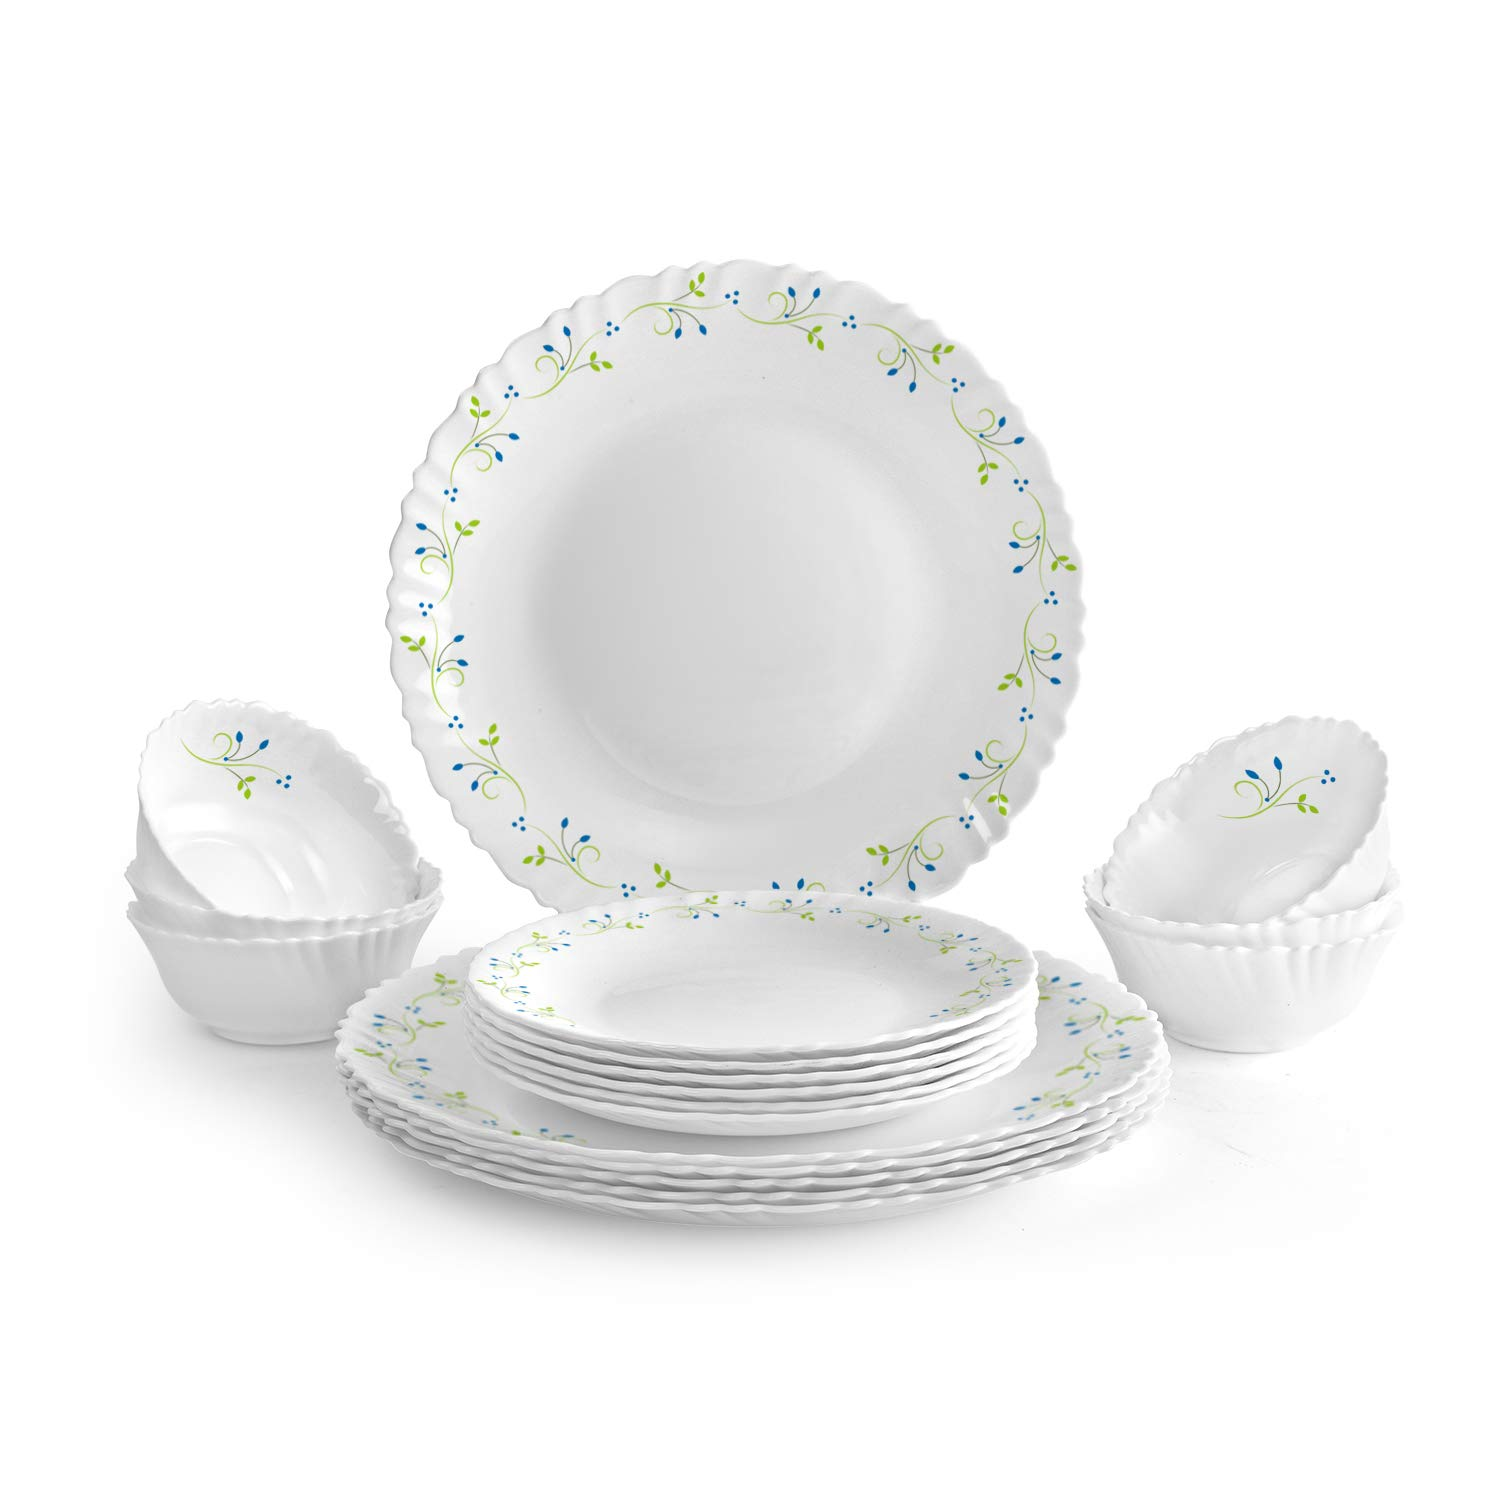 Cello Tropical Lagoon Opalware Dinner Set, 18-Pieces, White